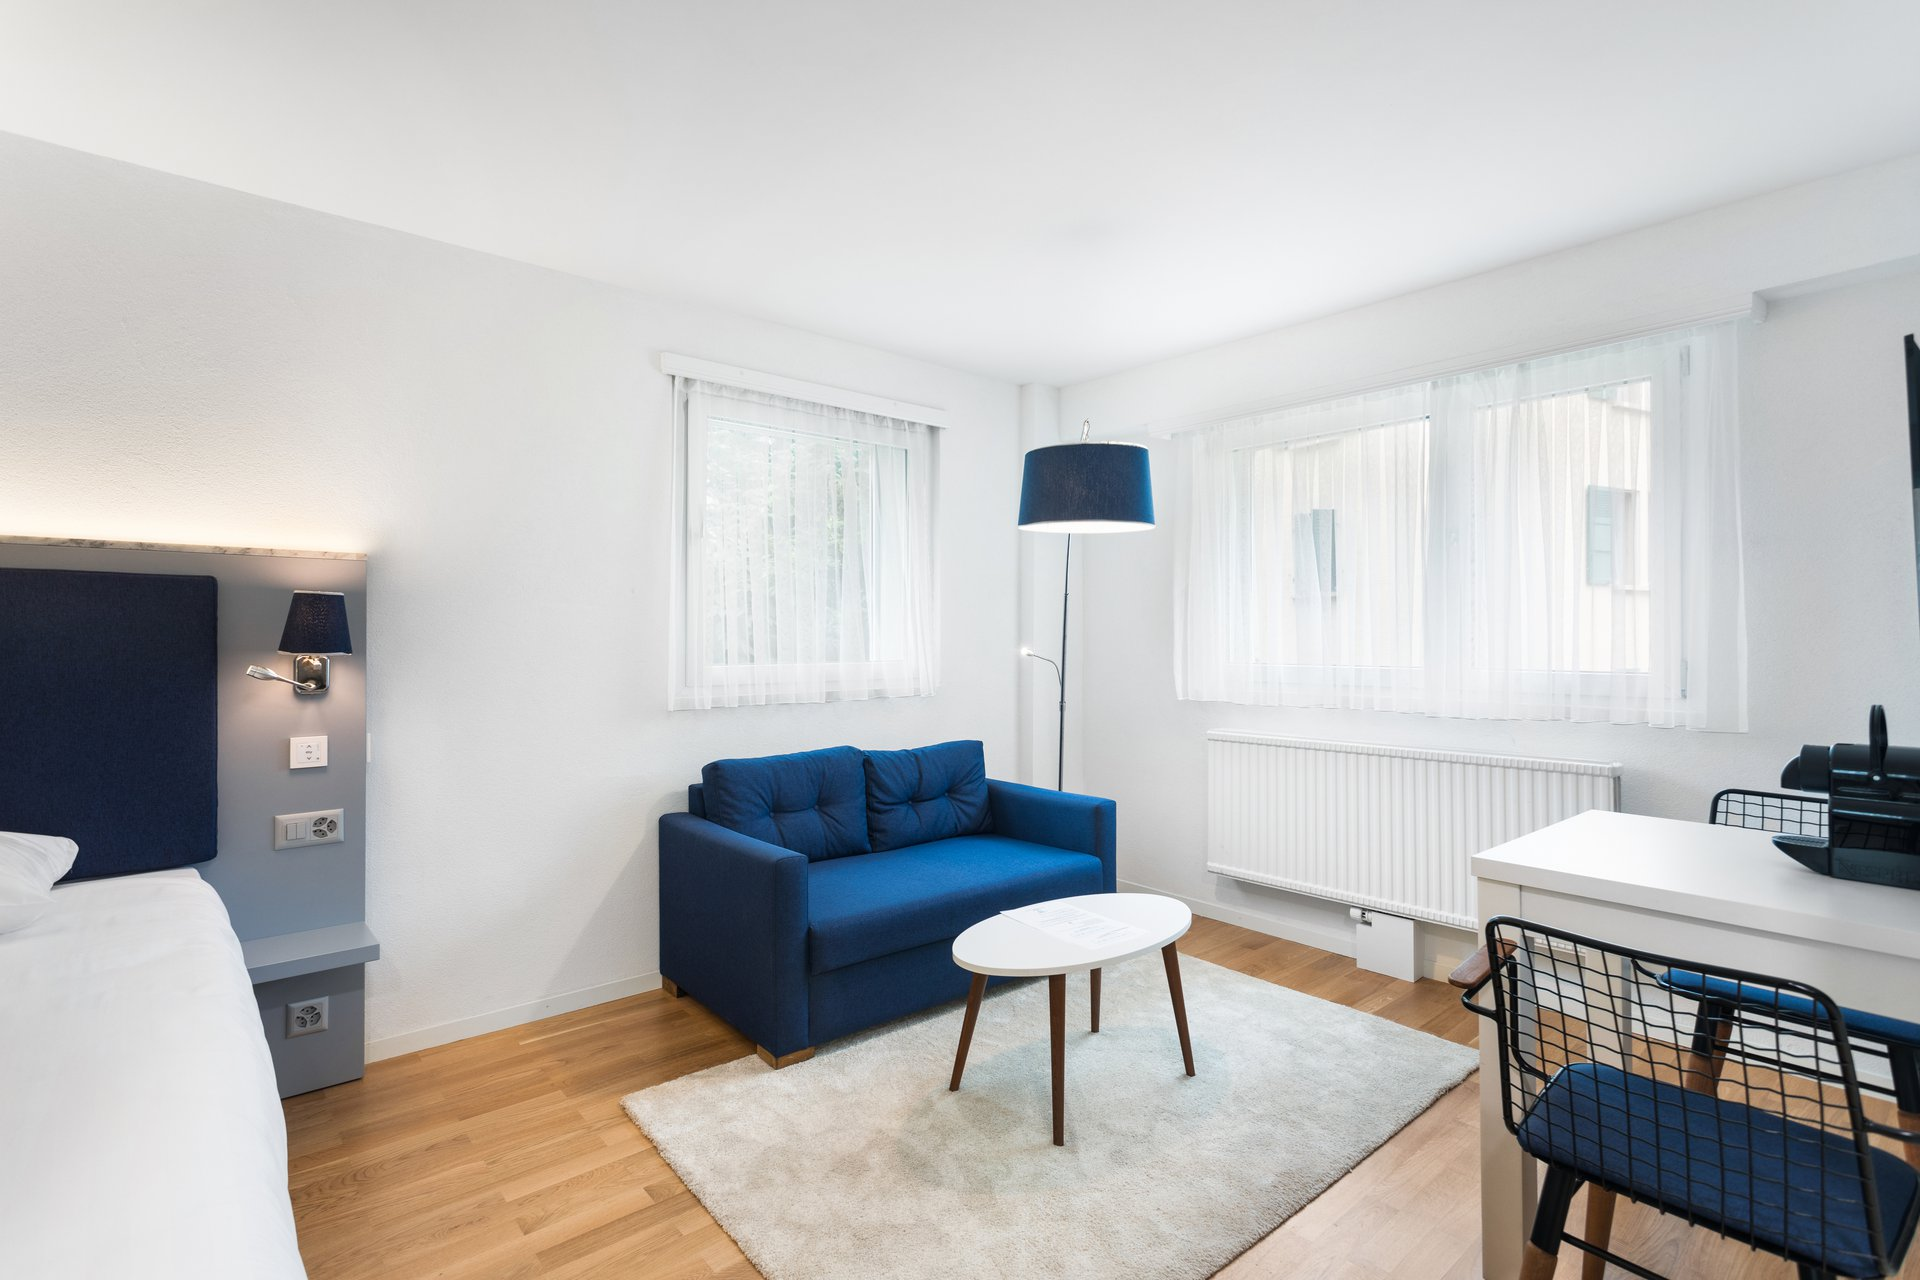 One of the brand new furnished studios located on the heights of Lausanne, in the very convenient La Sallaz, close to the Par